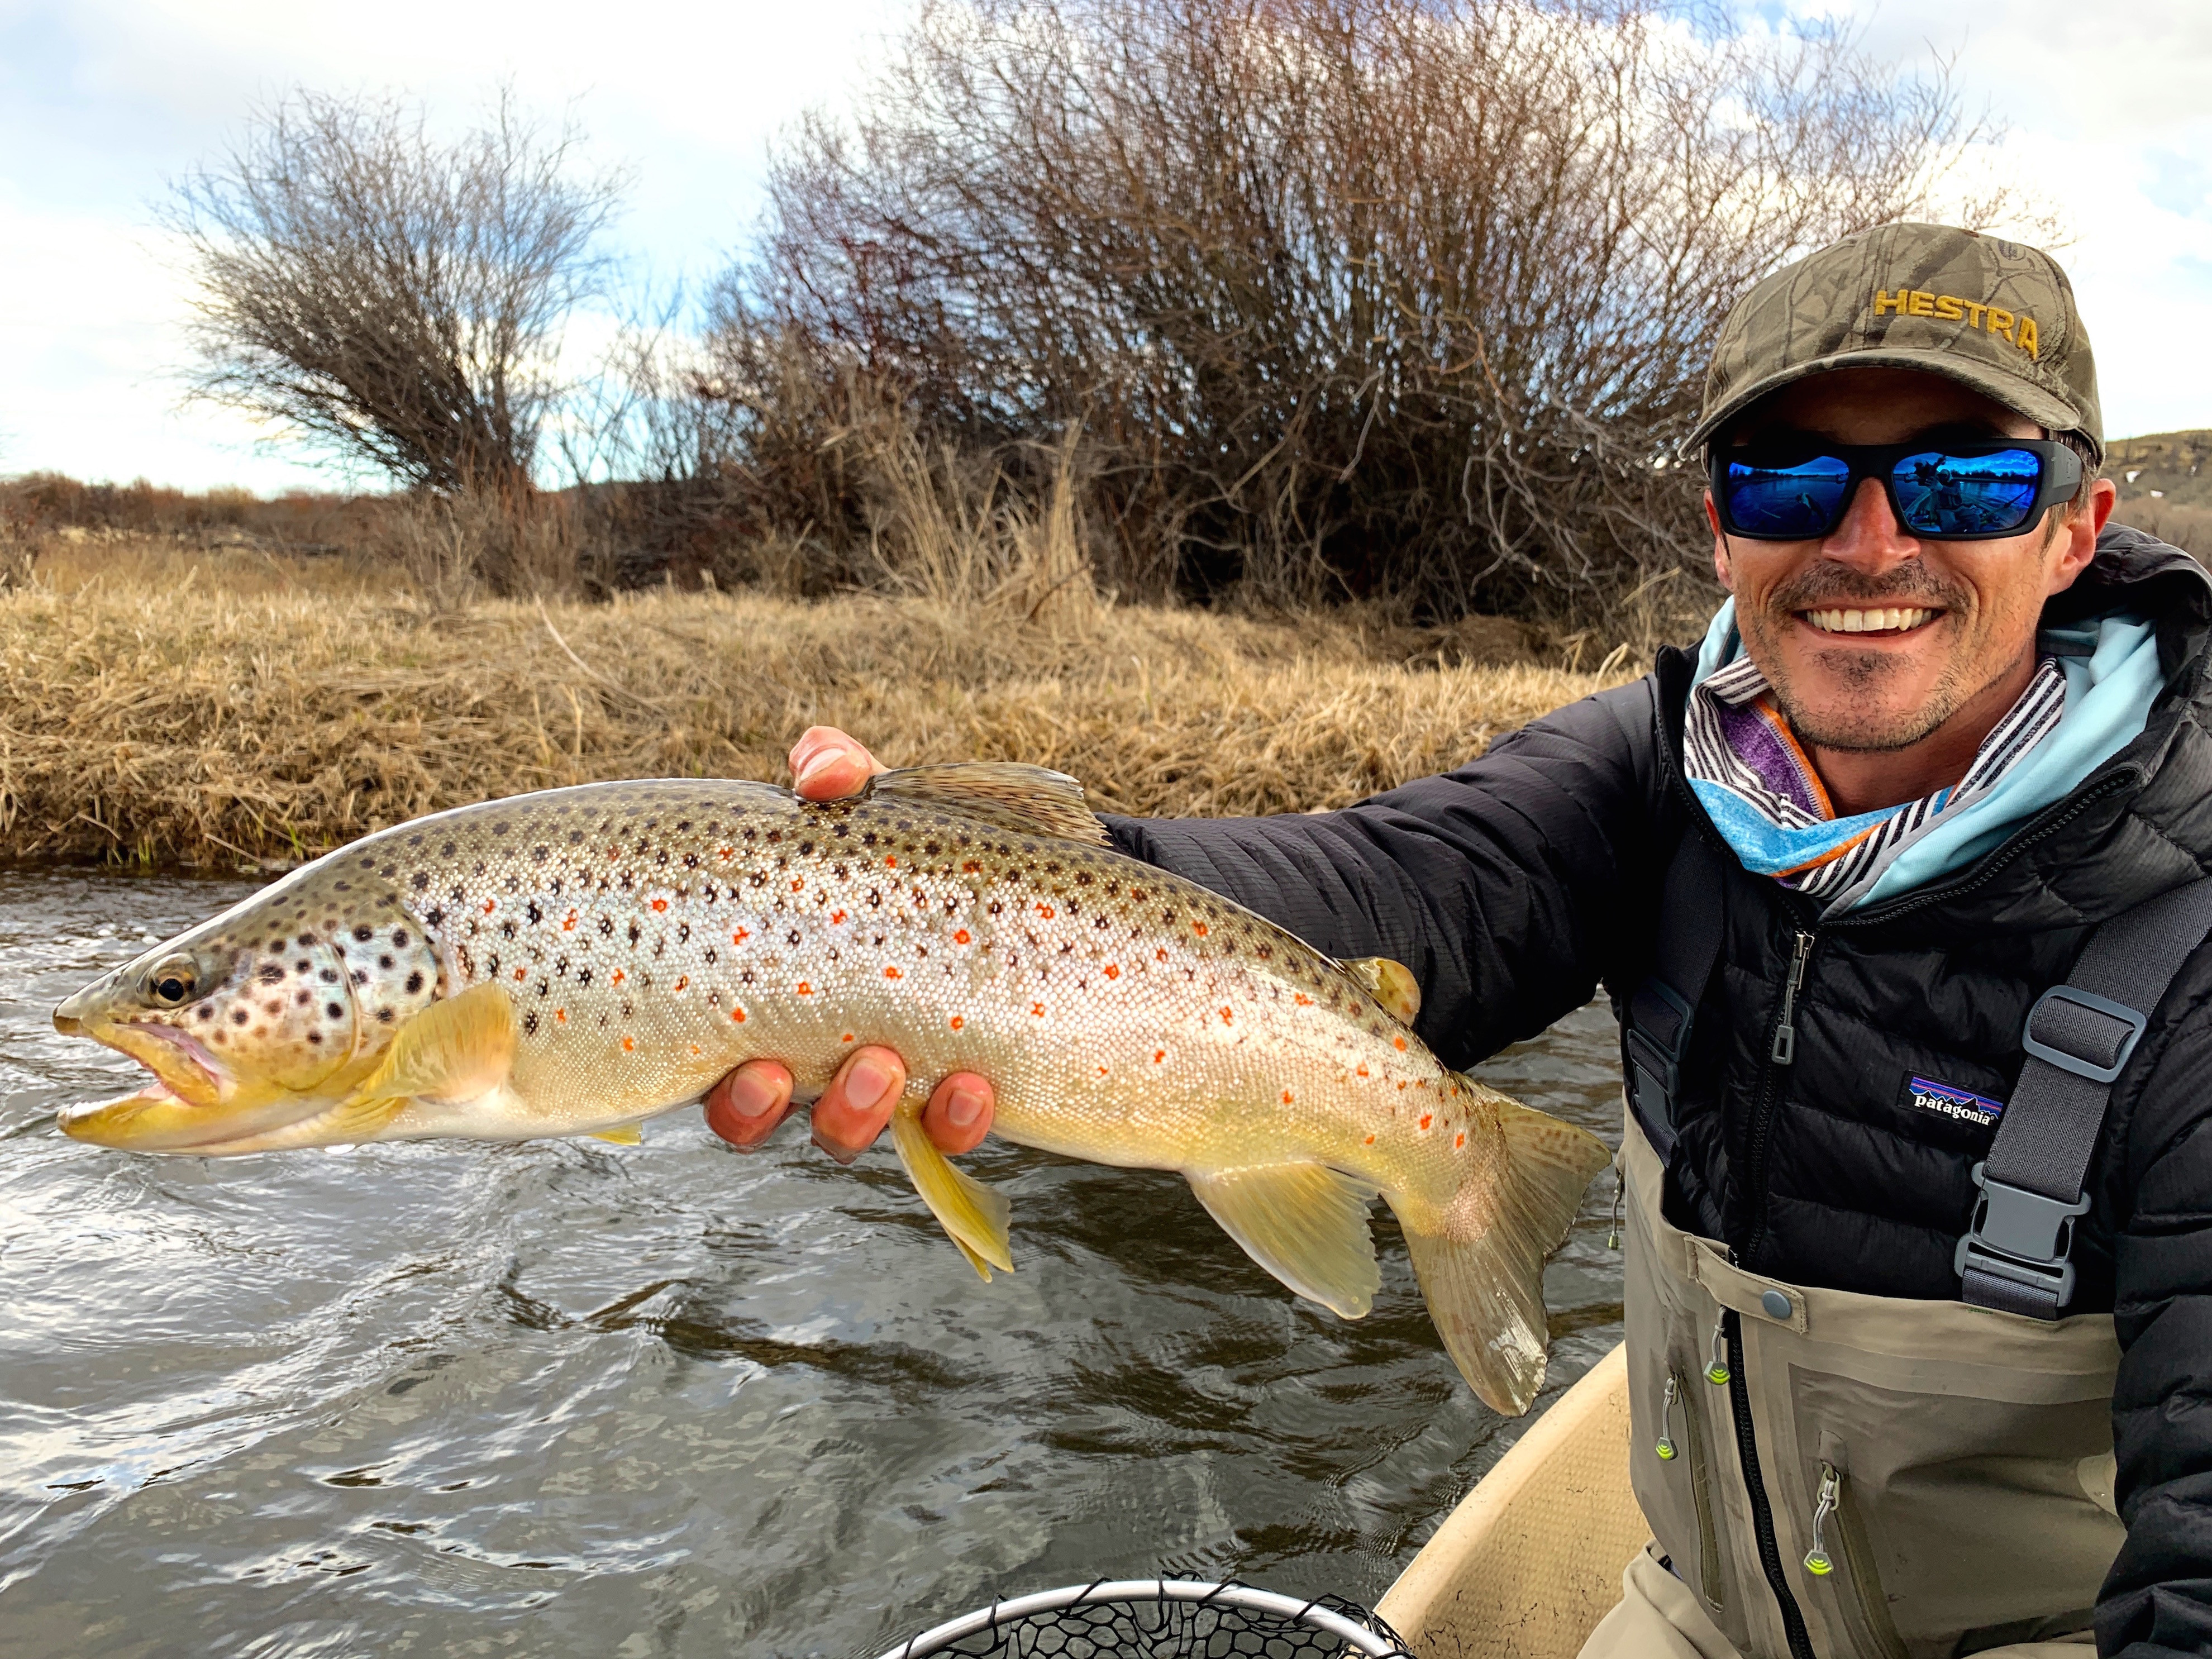 Full Day Guided Fishing Adventure